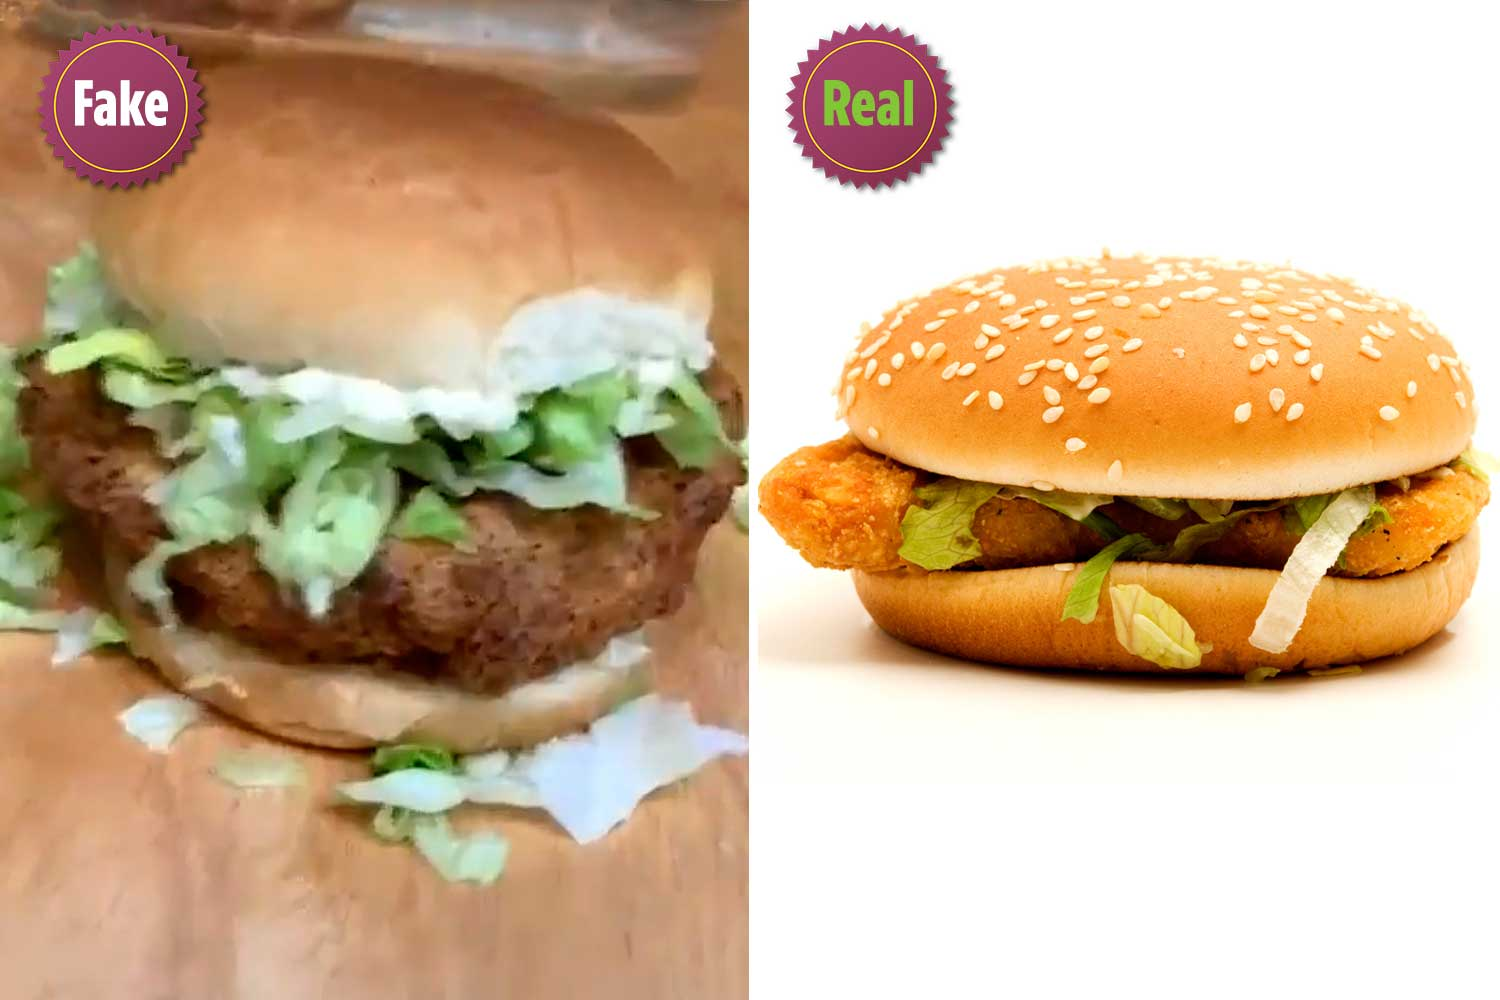 You can now enjoy a McChicken Sandwich at home following these simple steps